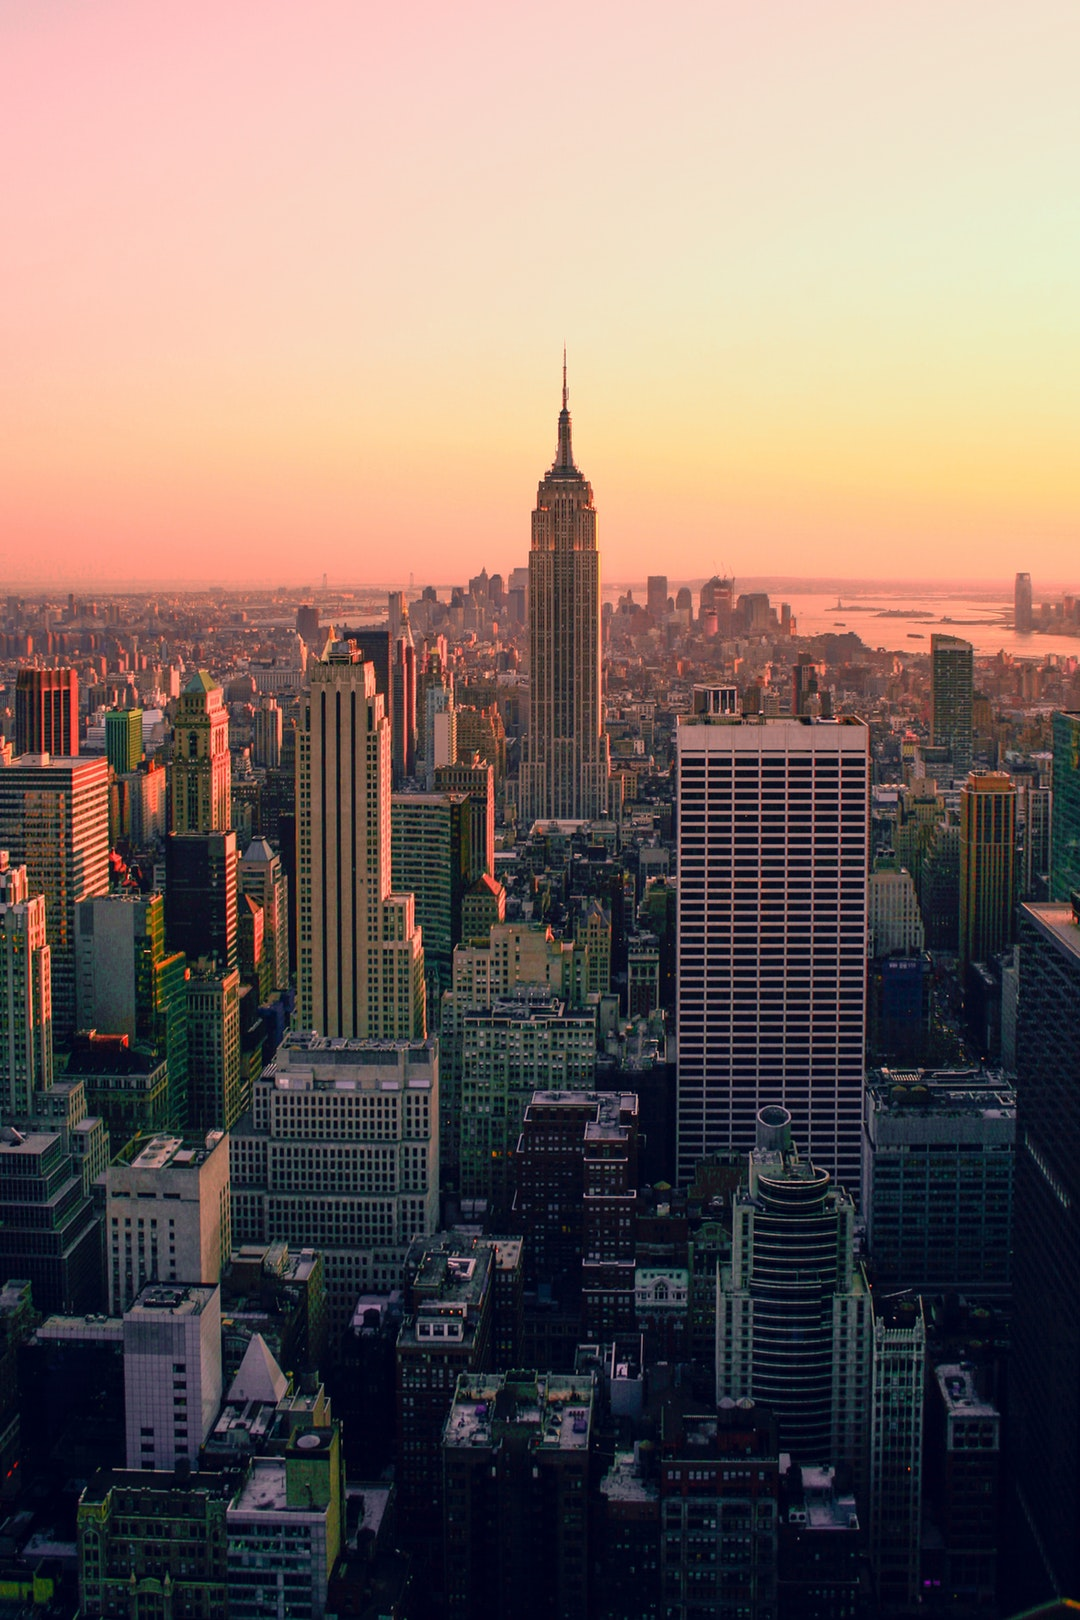 NYC Wallpapers   Top NYC Backgrounds   WallpaperAccess 1080x1620